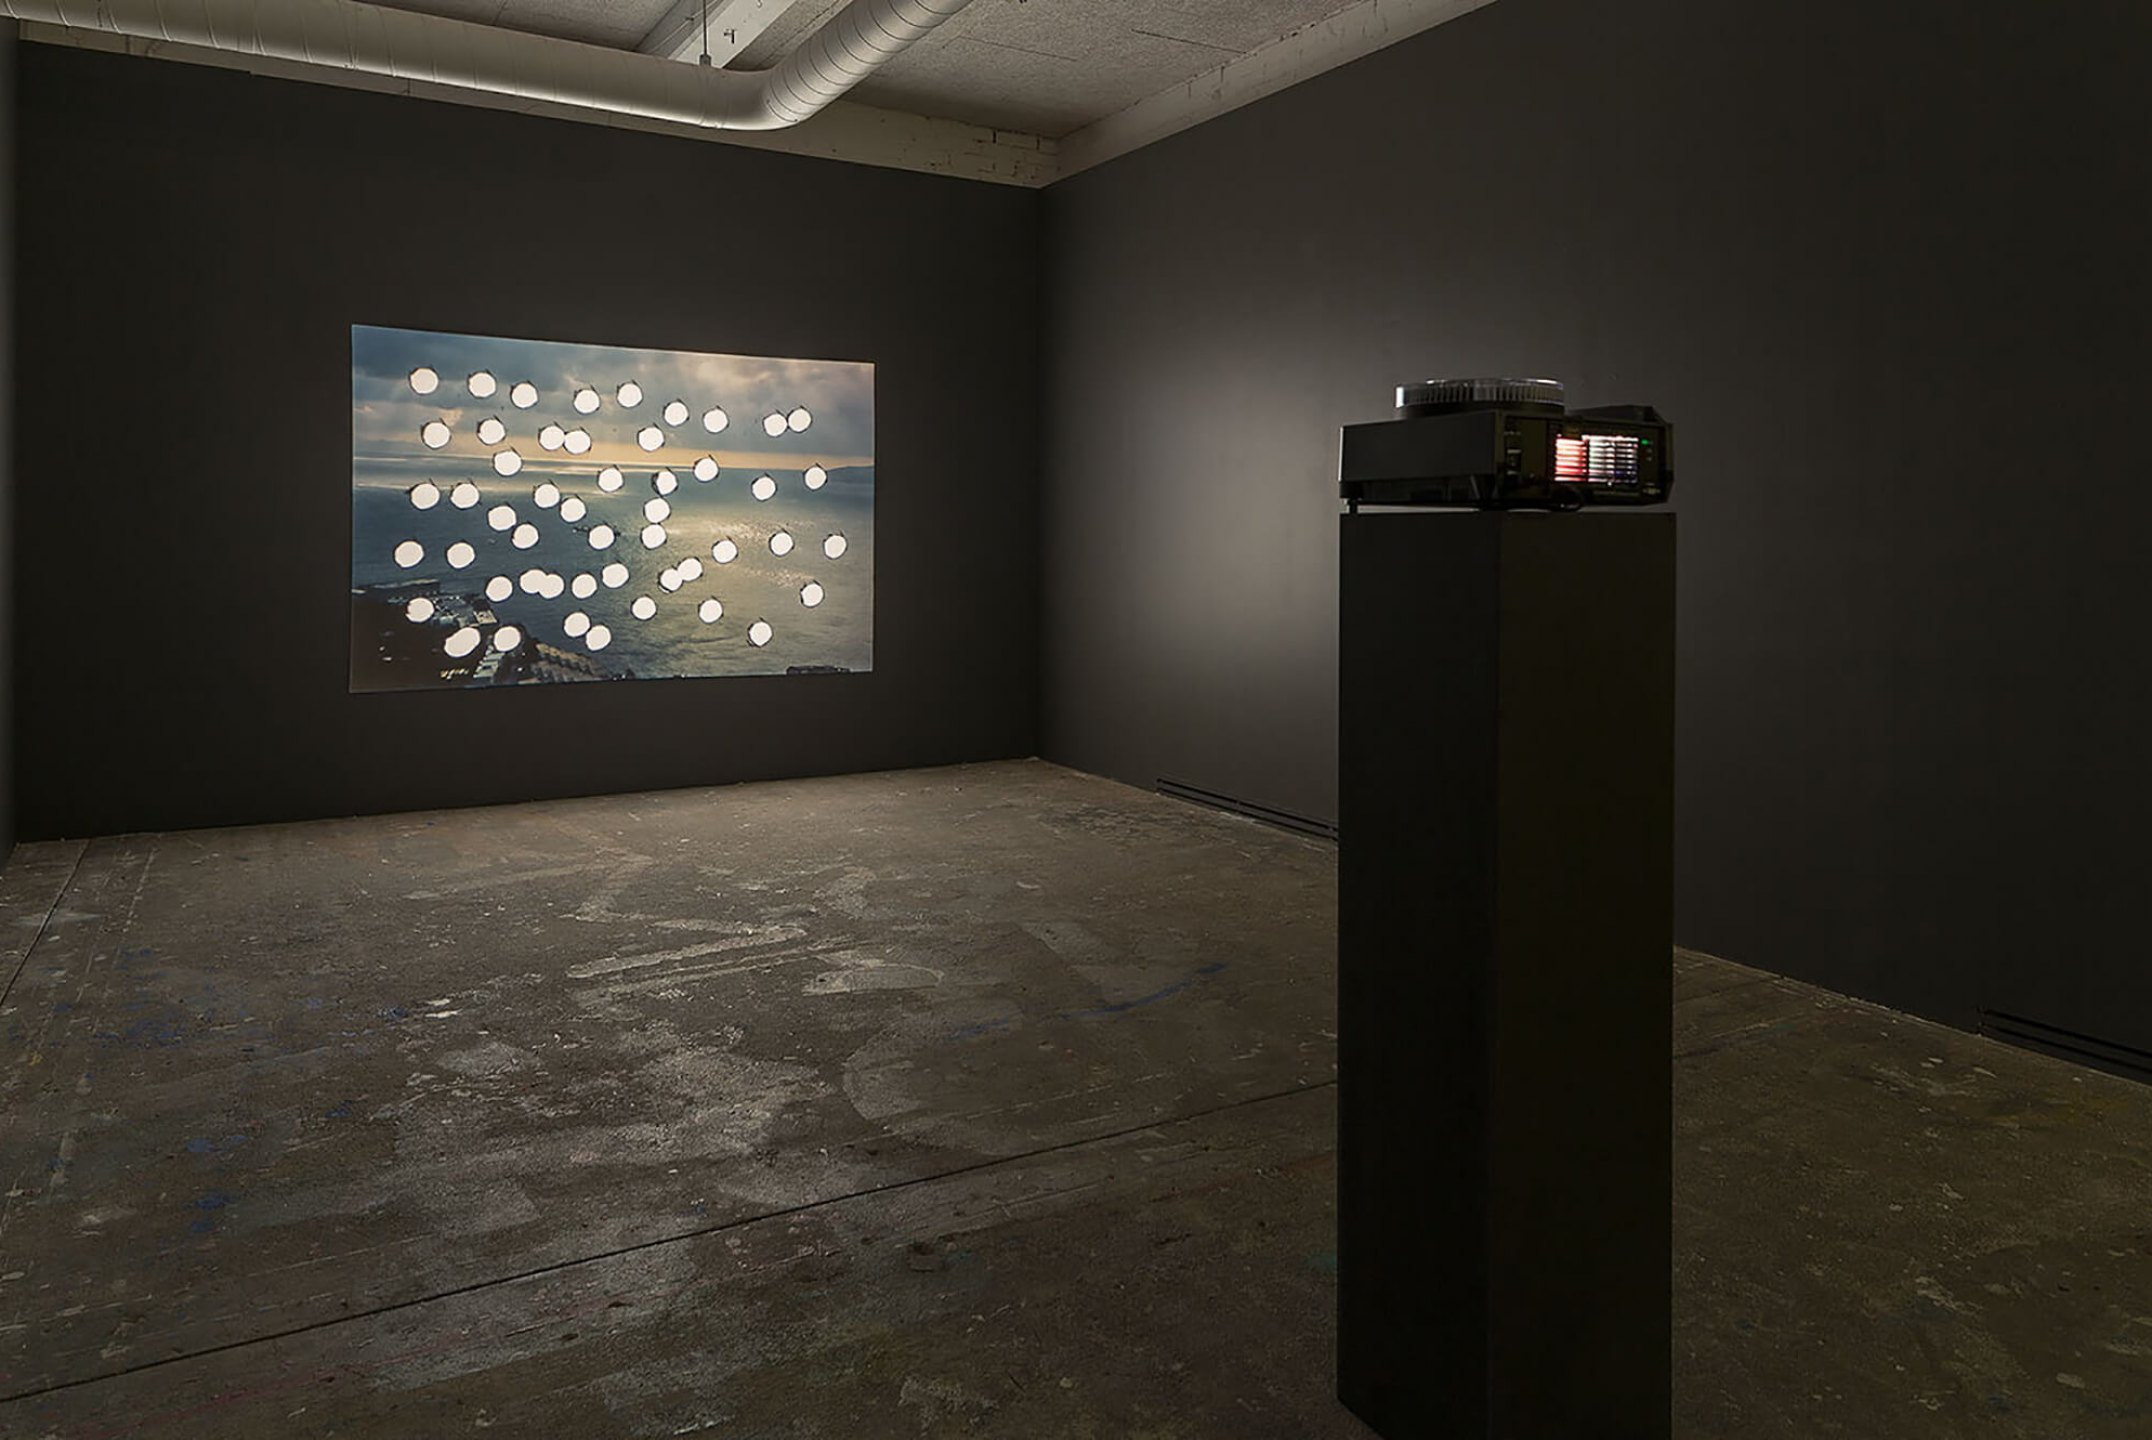 Runo Lagomarsino,<em>Sea Grammar,</em>2015, projection loop, 80 perforated images in a carrousel of projector slide with timer, 1 original image,variable projection image - Mendes Wood DM